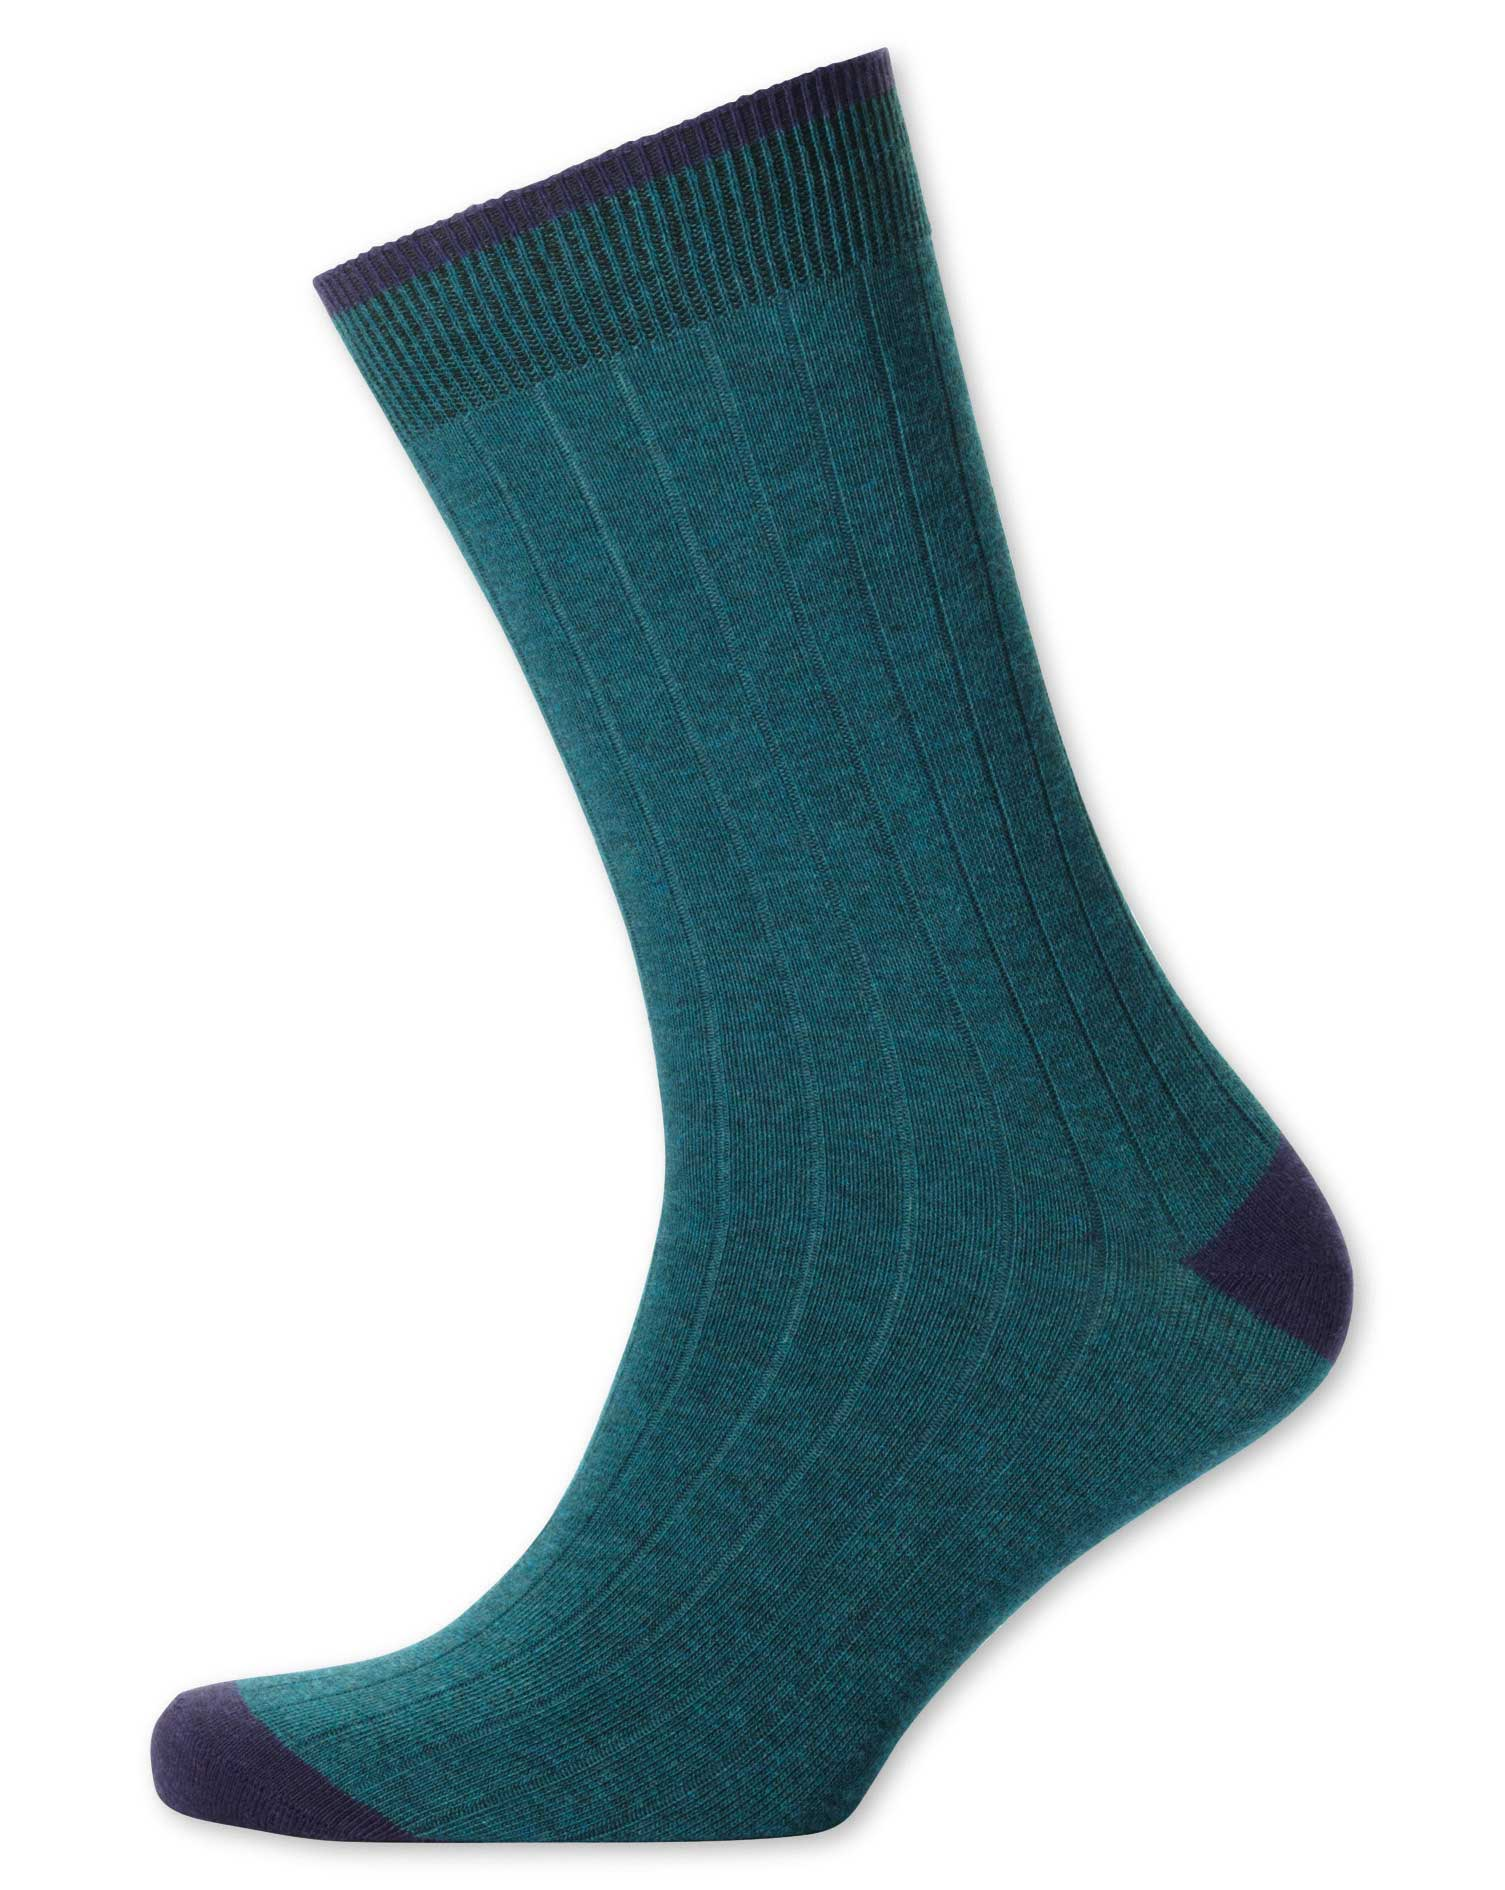 Teal Ribbed Socks Size Medium by Charles Tyrwhitt